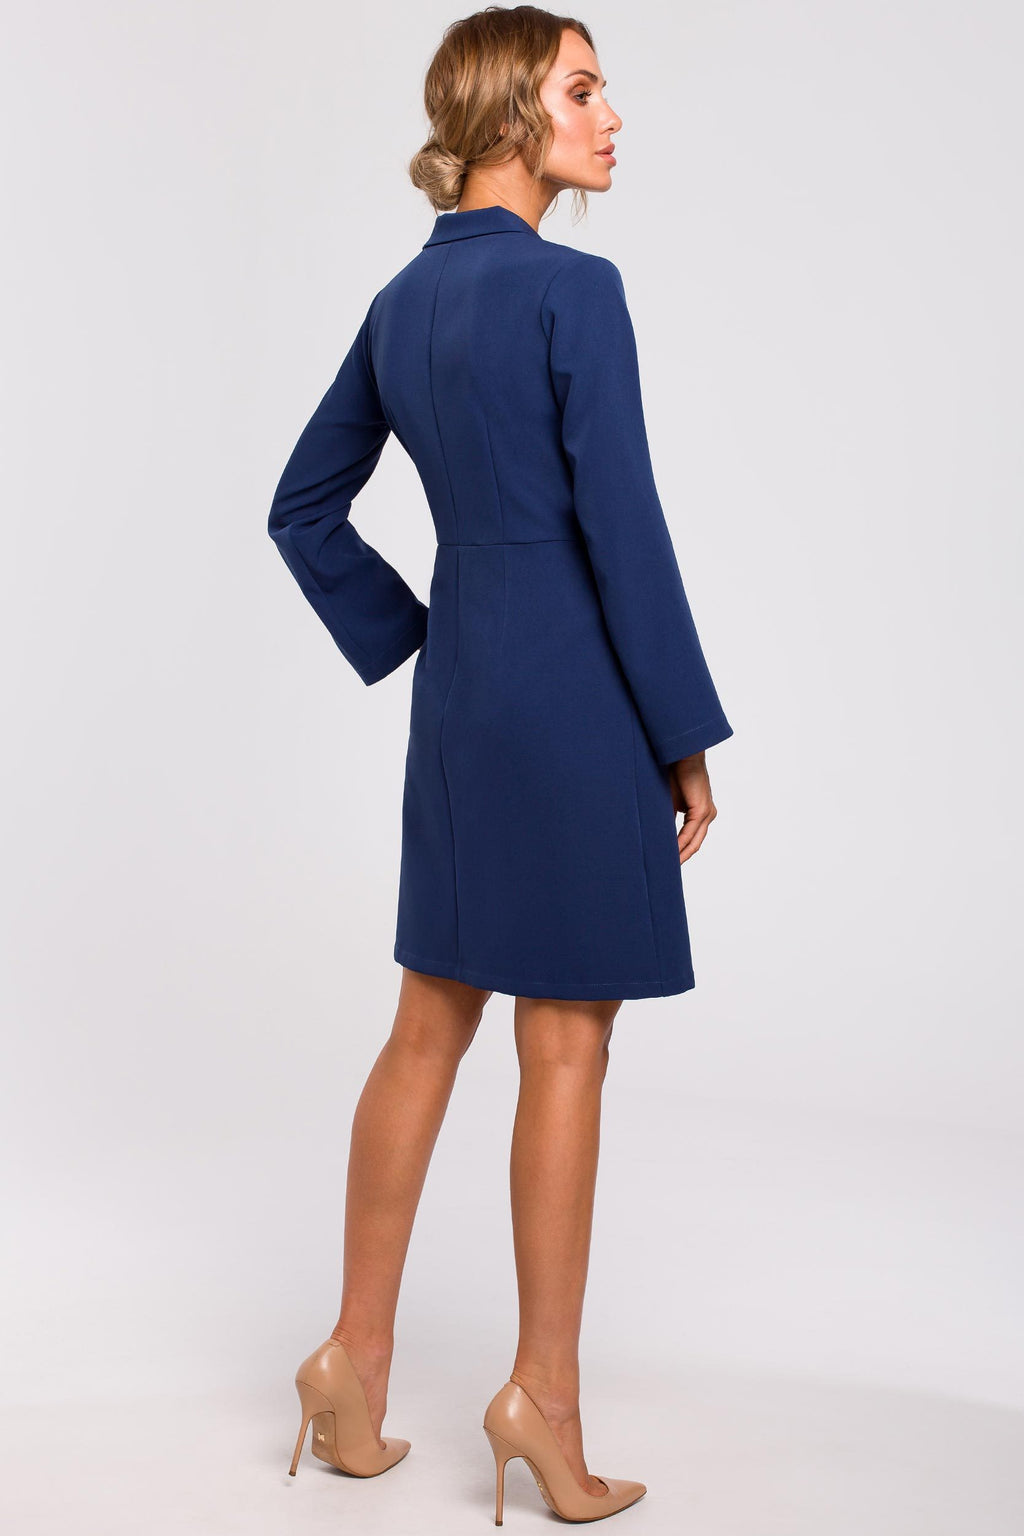 Navy Blue Wrap Blazer Dress With Wide Sleeves - So Chic Boutique